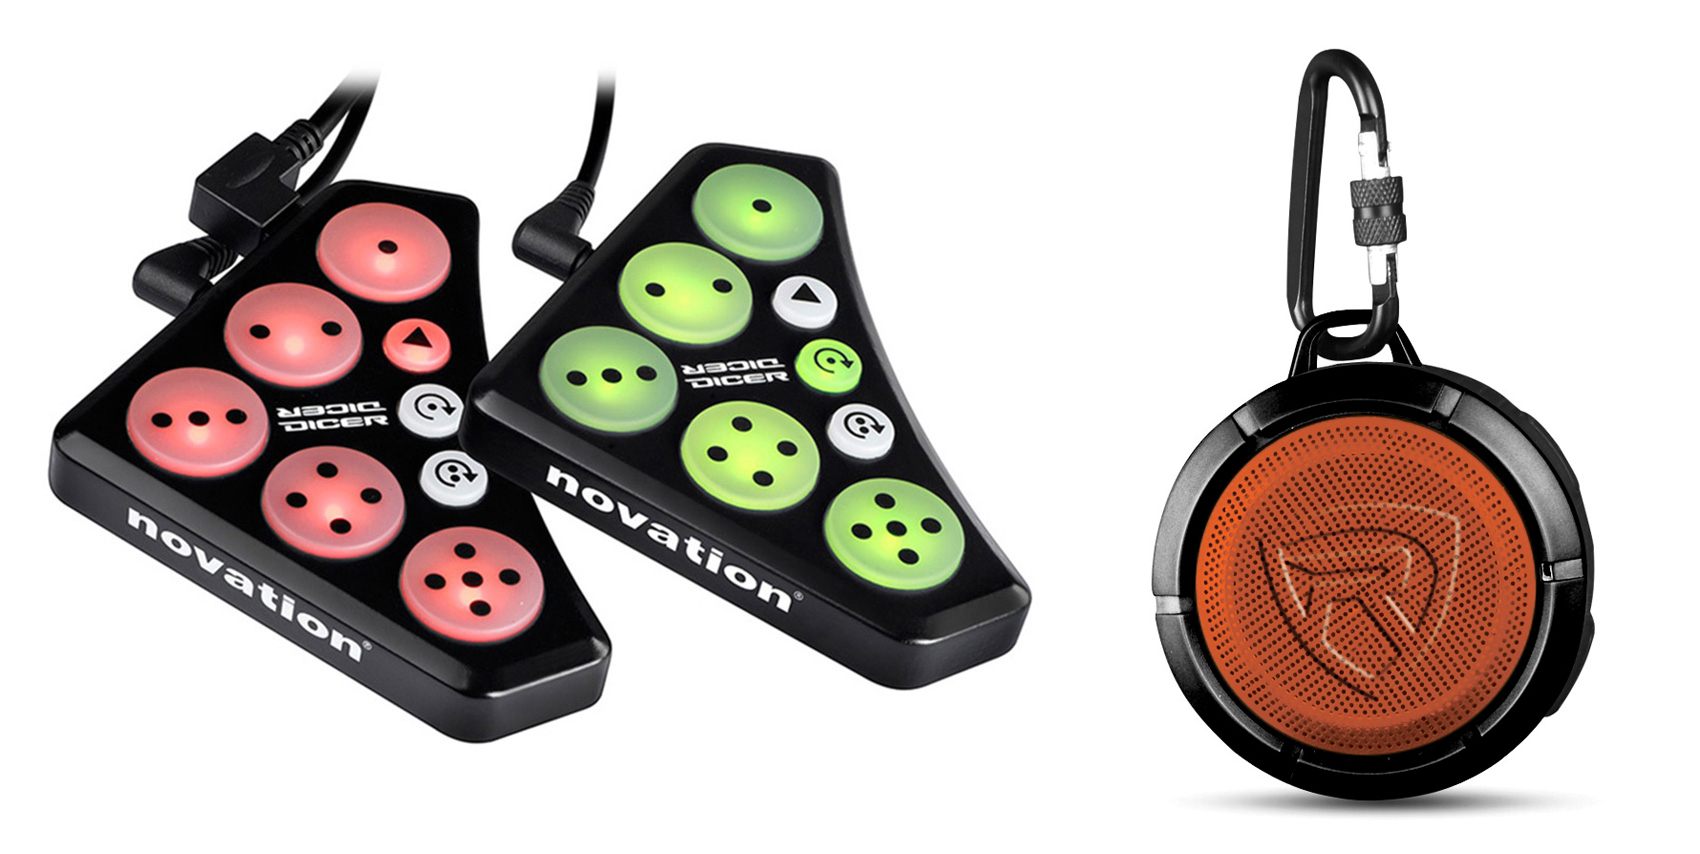 Novation DICER Digital Cue Point+Looping Serato Traktor DJ Controller+Speaker by Novation